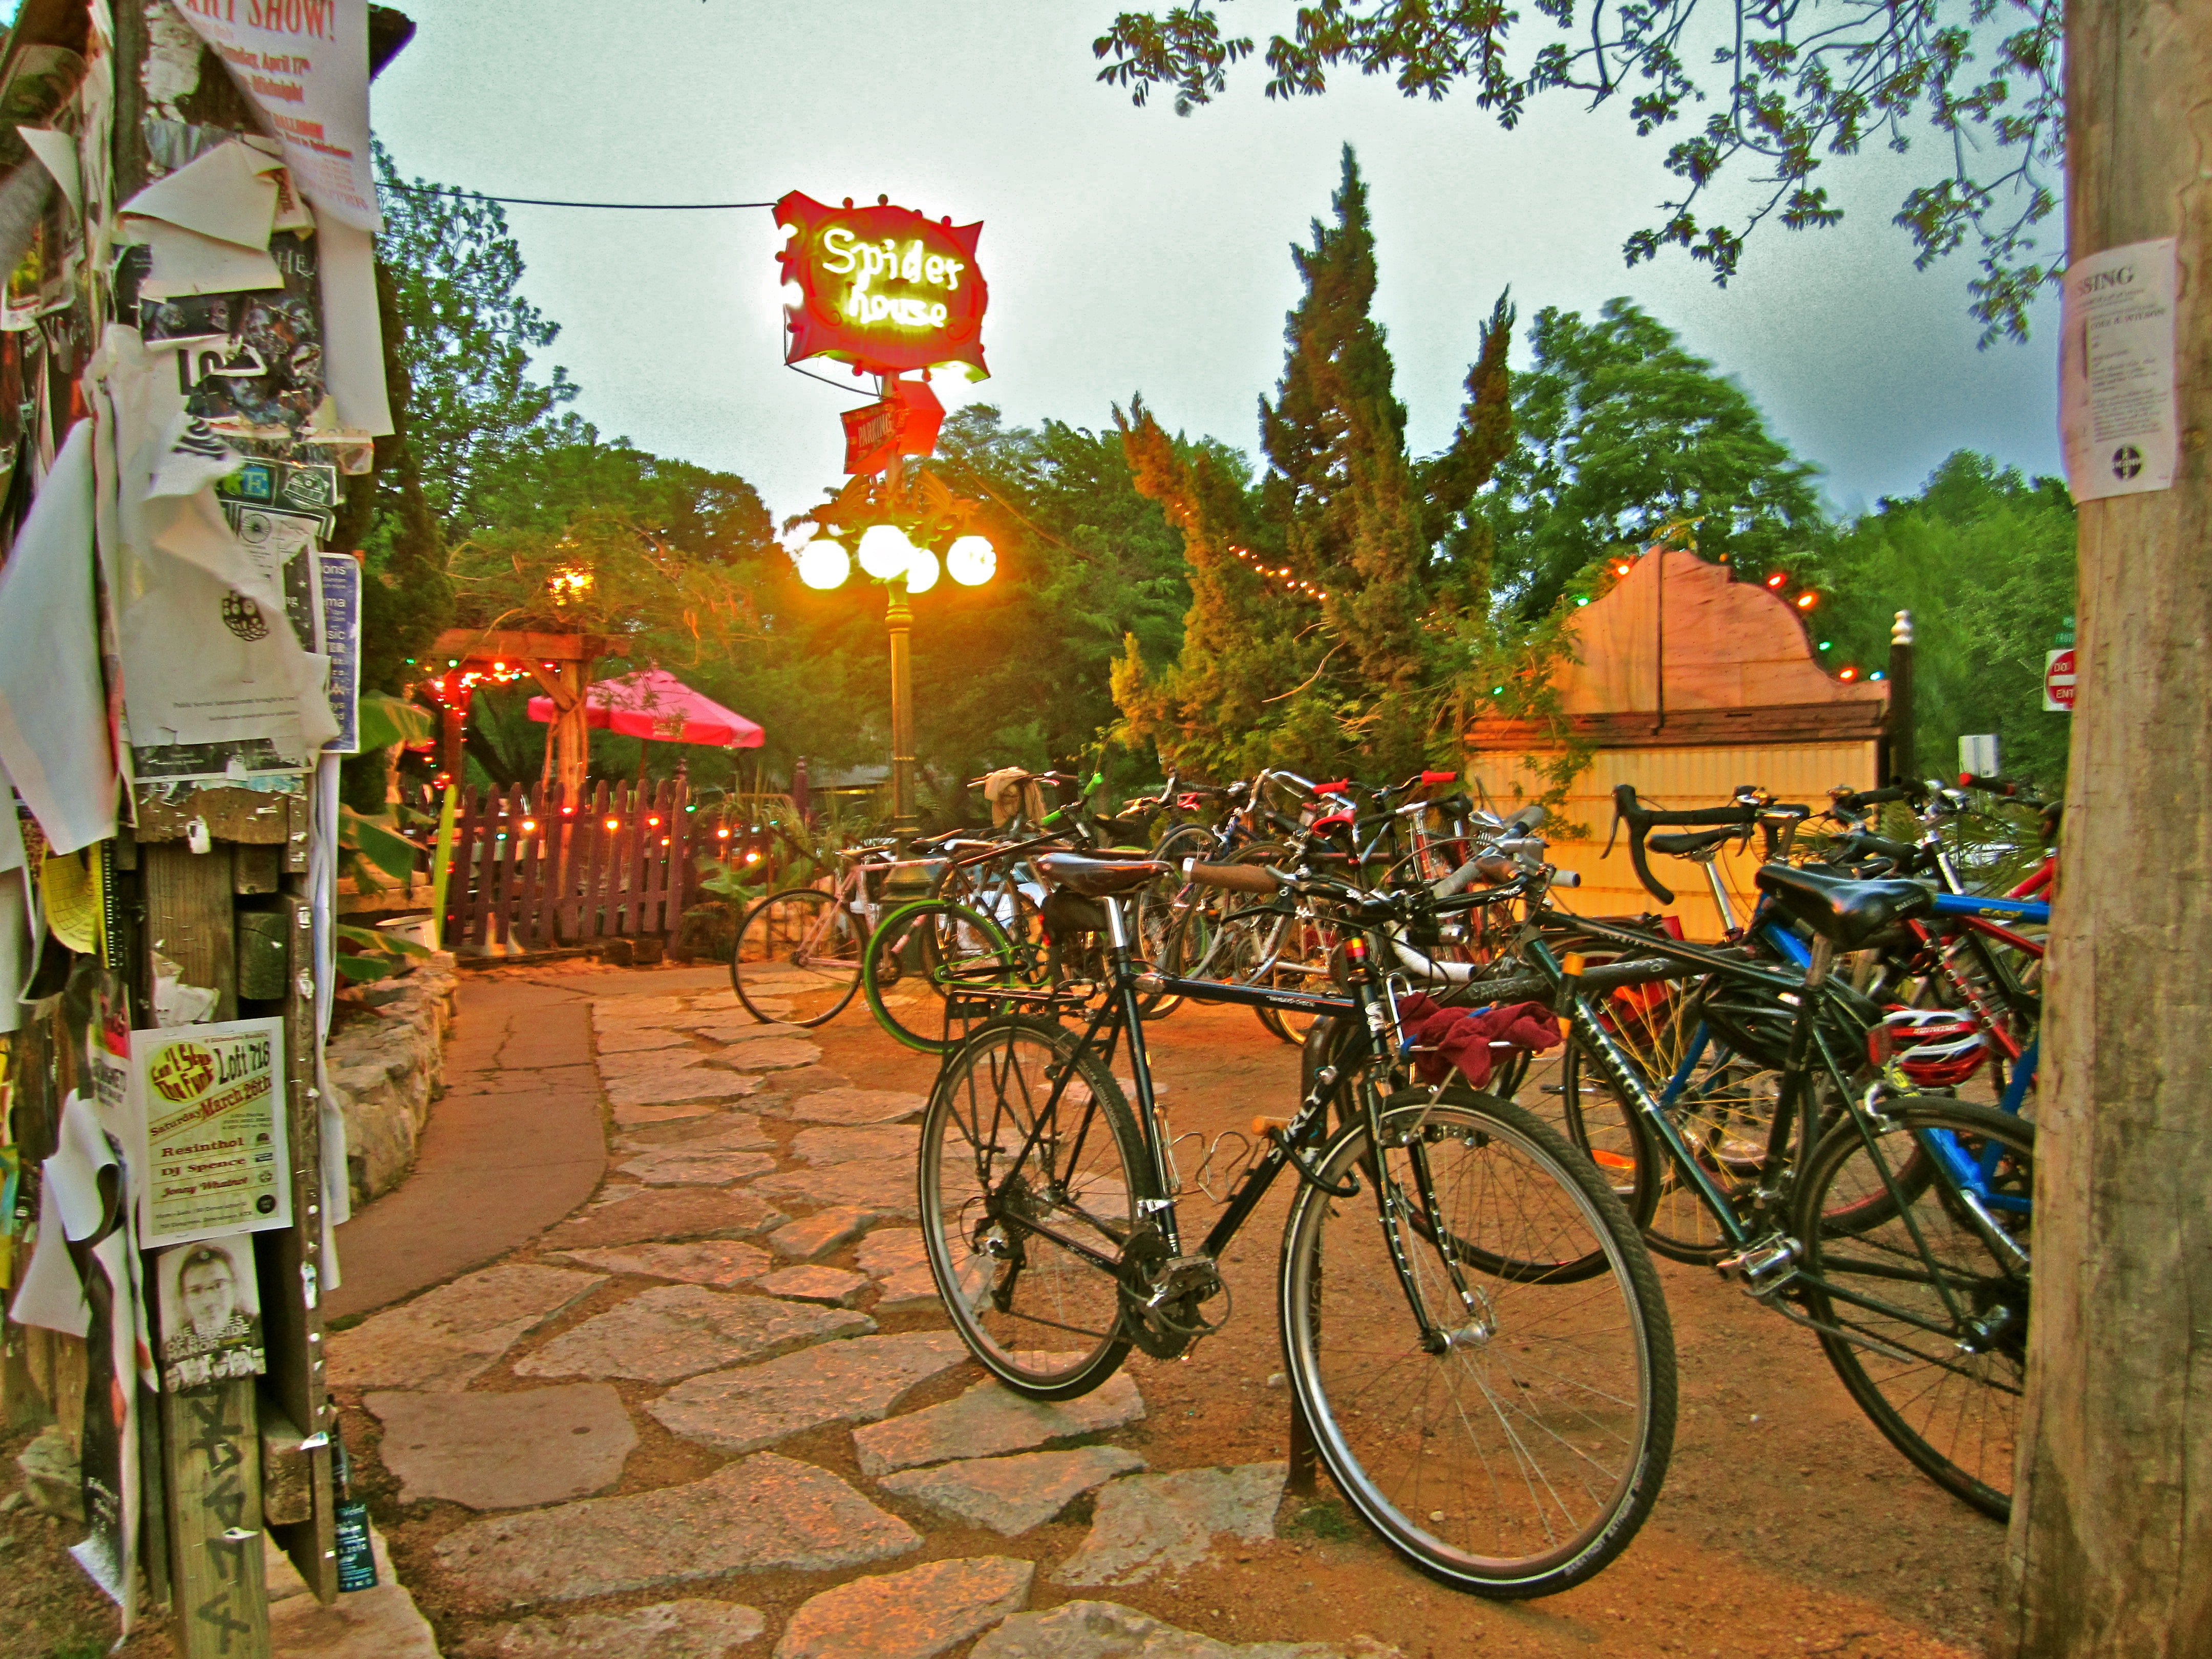 Gourmet Coffee, Craft Beers, And Wine: On The Edge Of UT Austin Texas